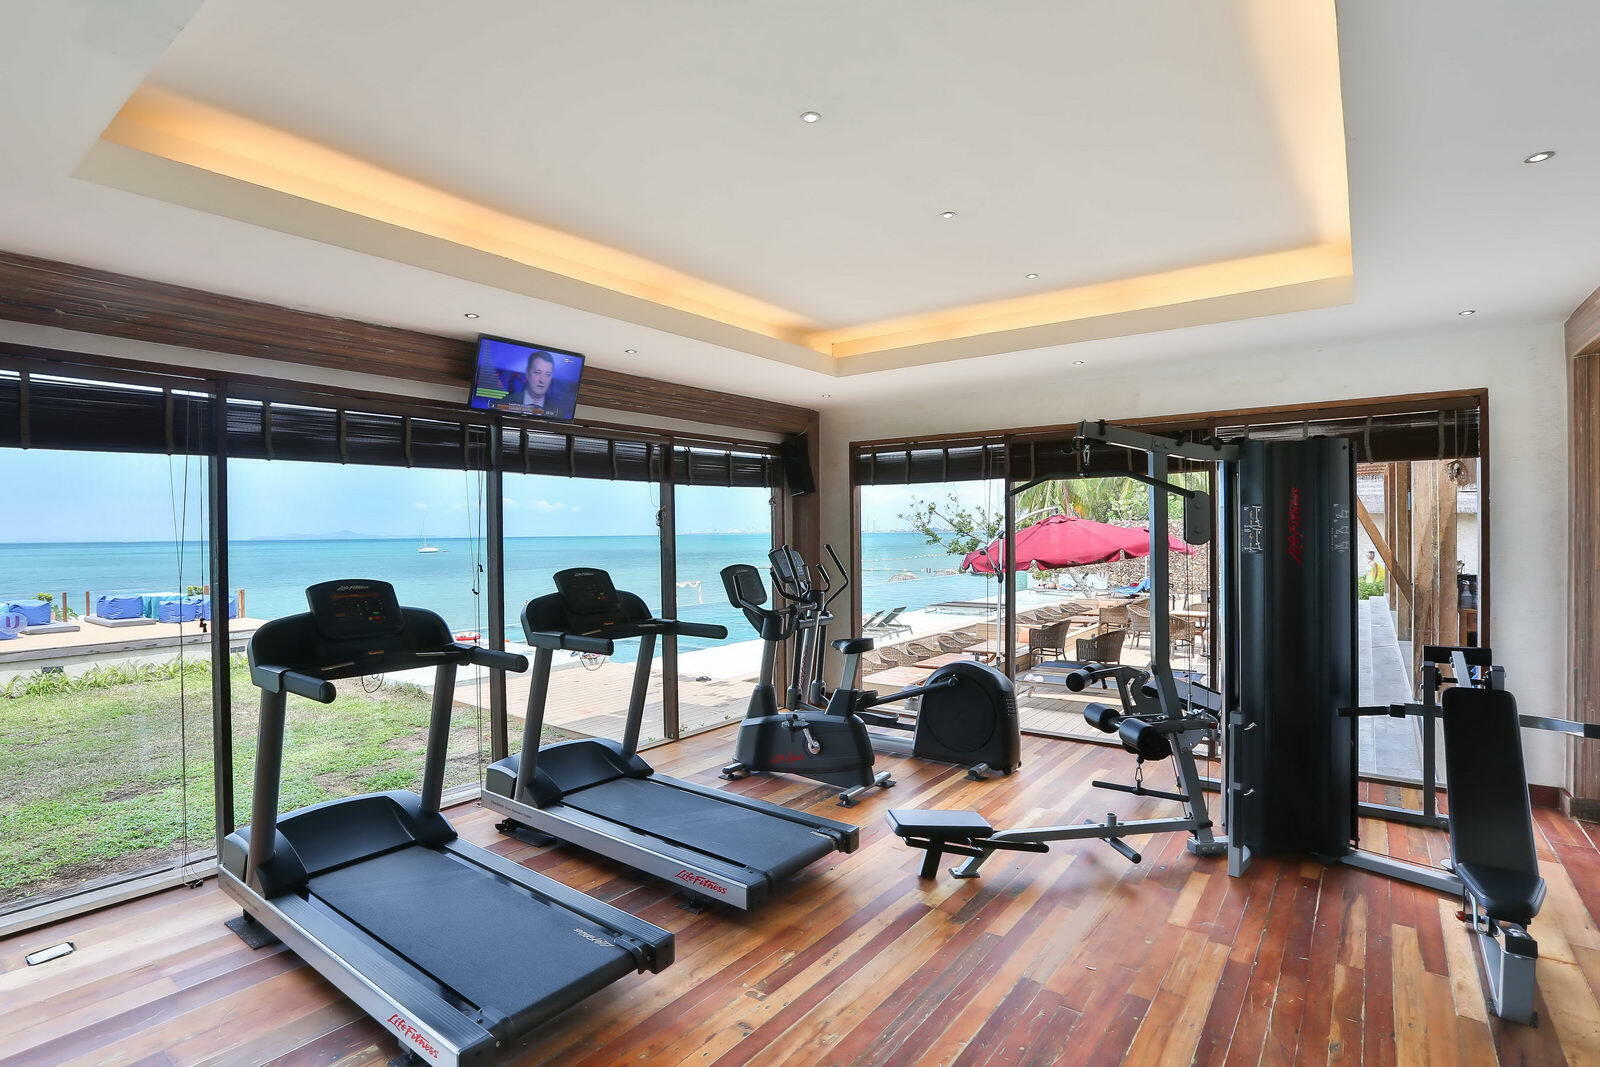 Fitness Center at U Pattaya